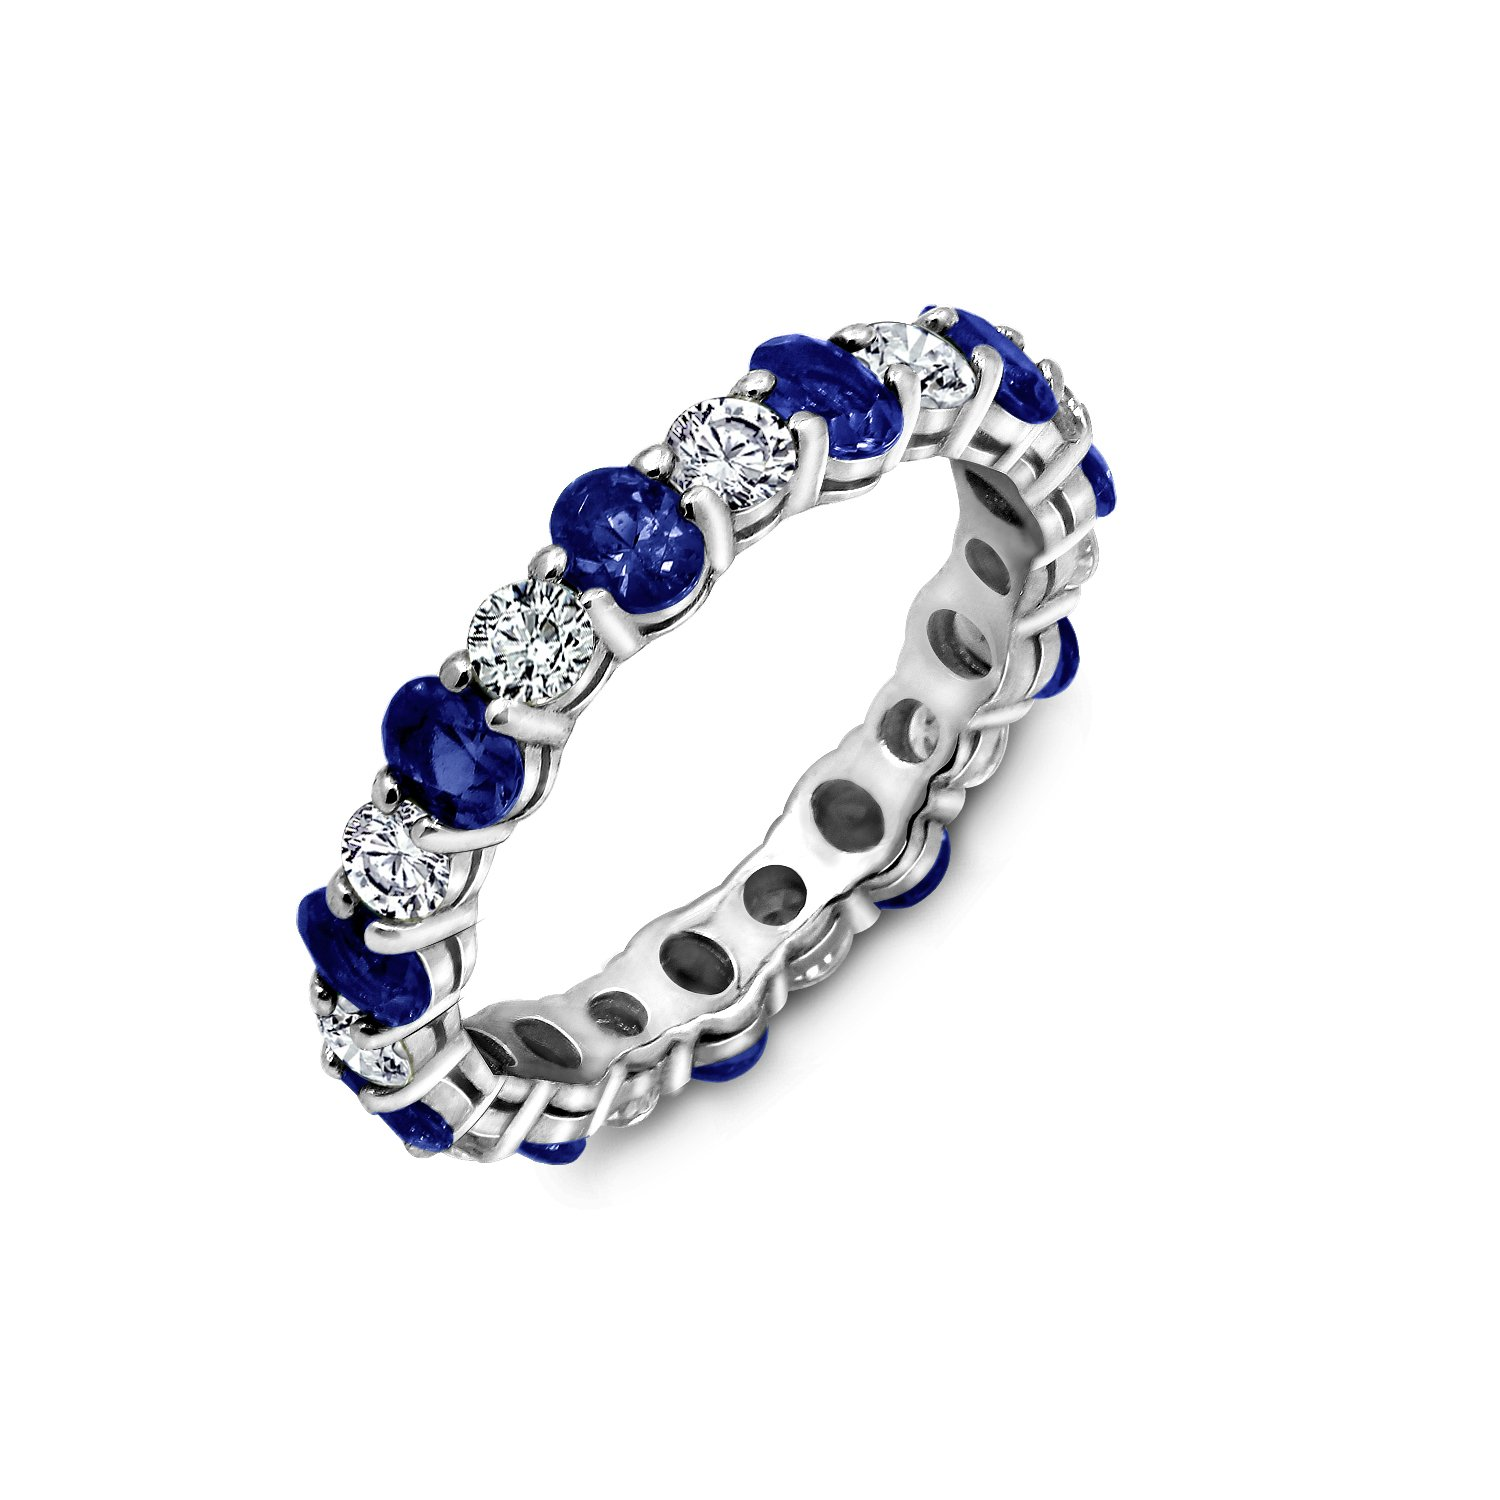 Diamonbliss Sterling Silver Cubic Zirconia Created Gemstone Eternity Band Ring- Sapphire, Size 10